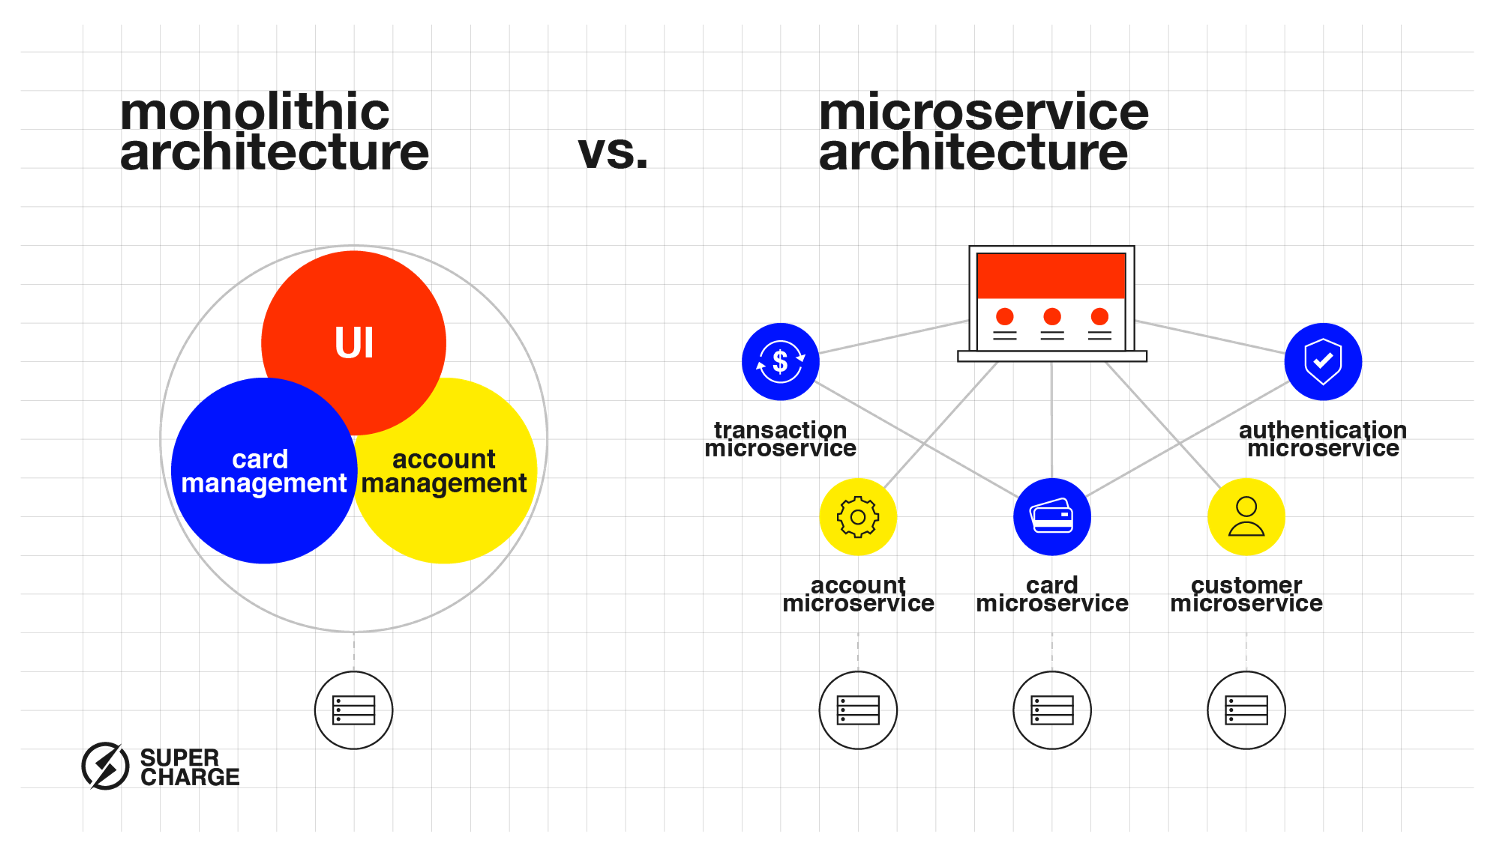 Monolithic architecture vs microservices architecture